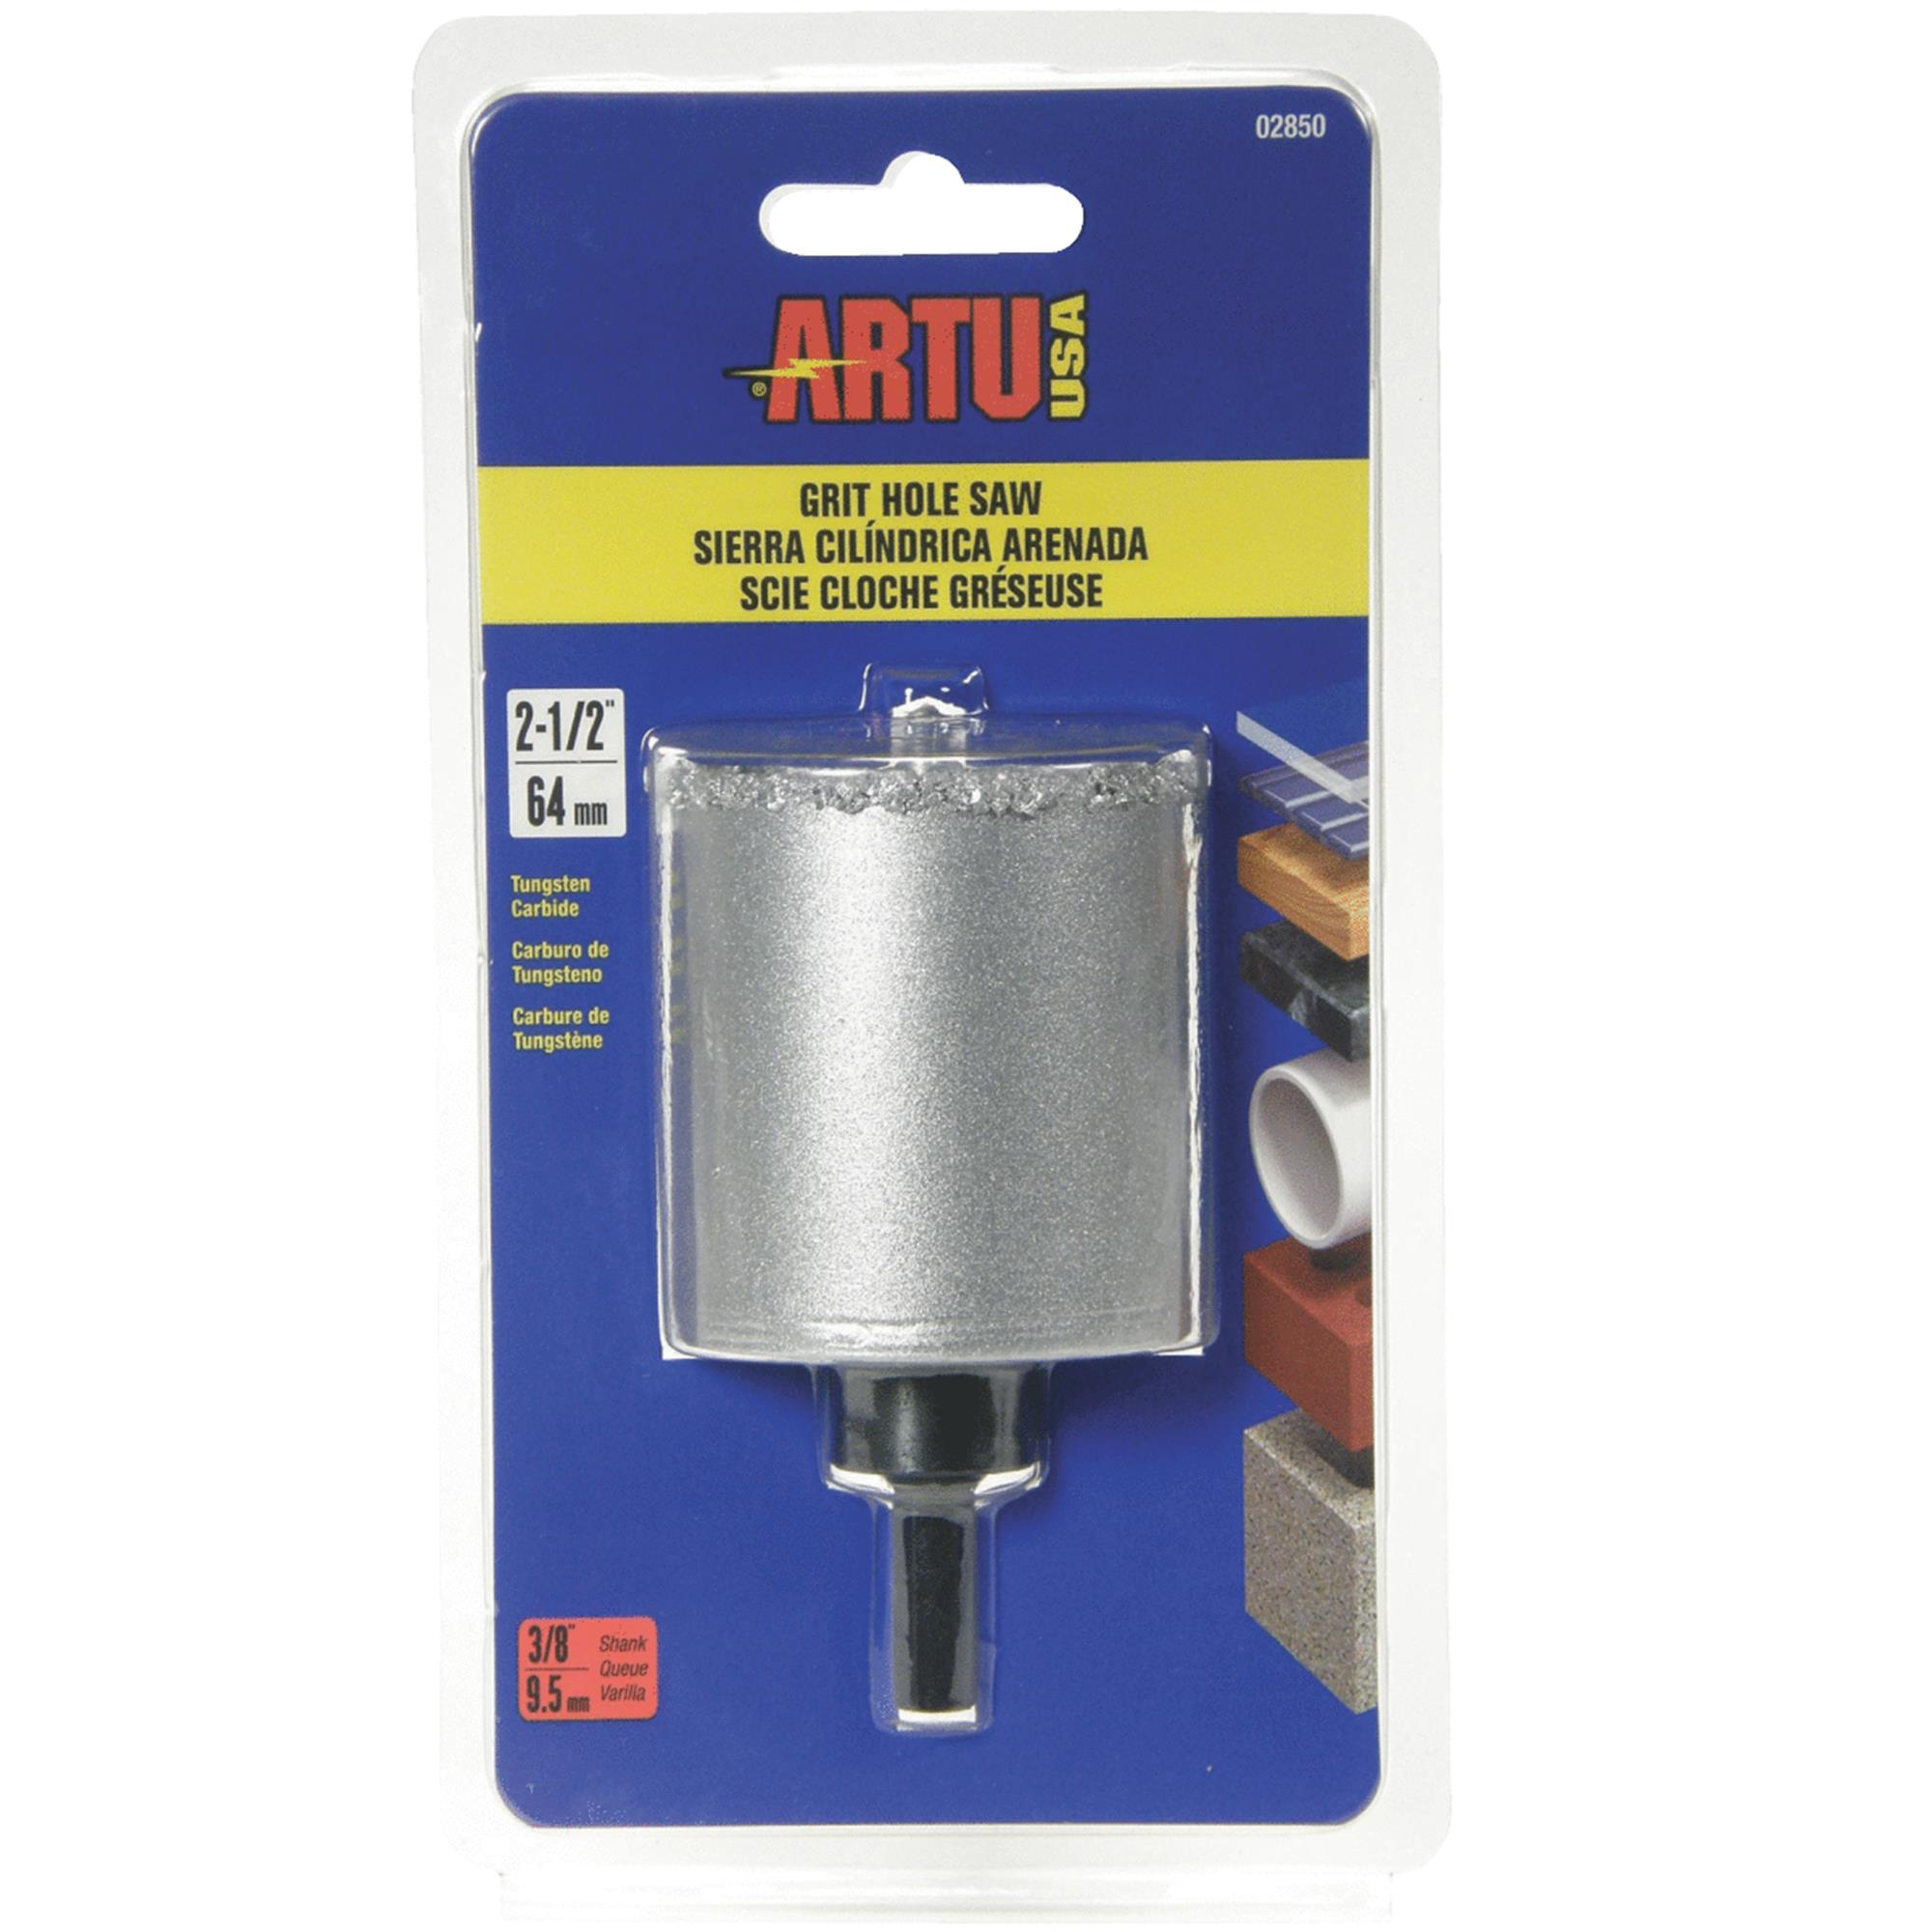 Artu 02850 Hole Saw With Arbor and Pilot Bit, 2-1/2 in Dia, 3/8 in, Tungsten Carbide